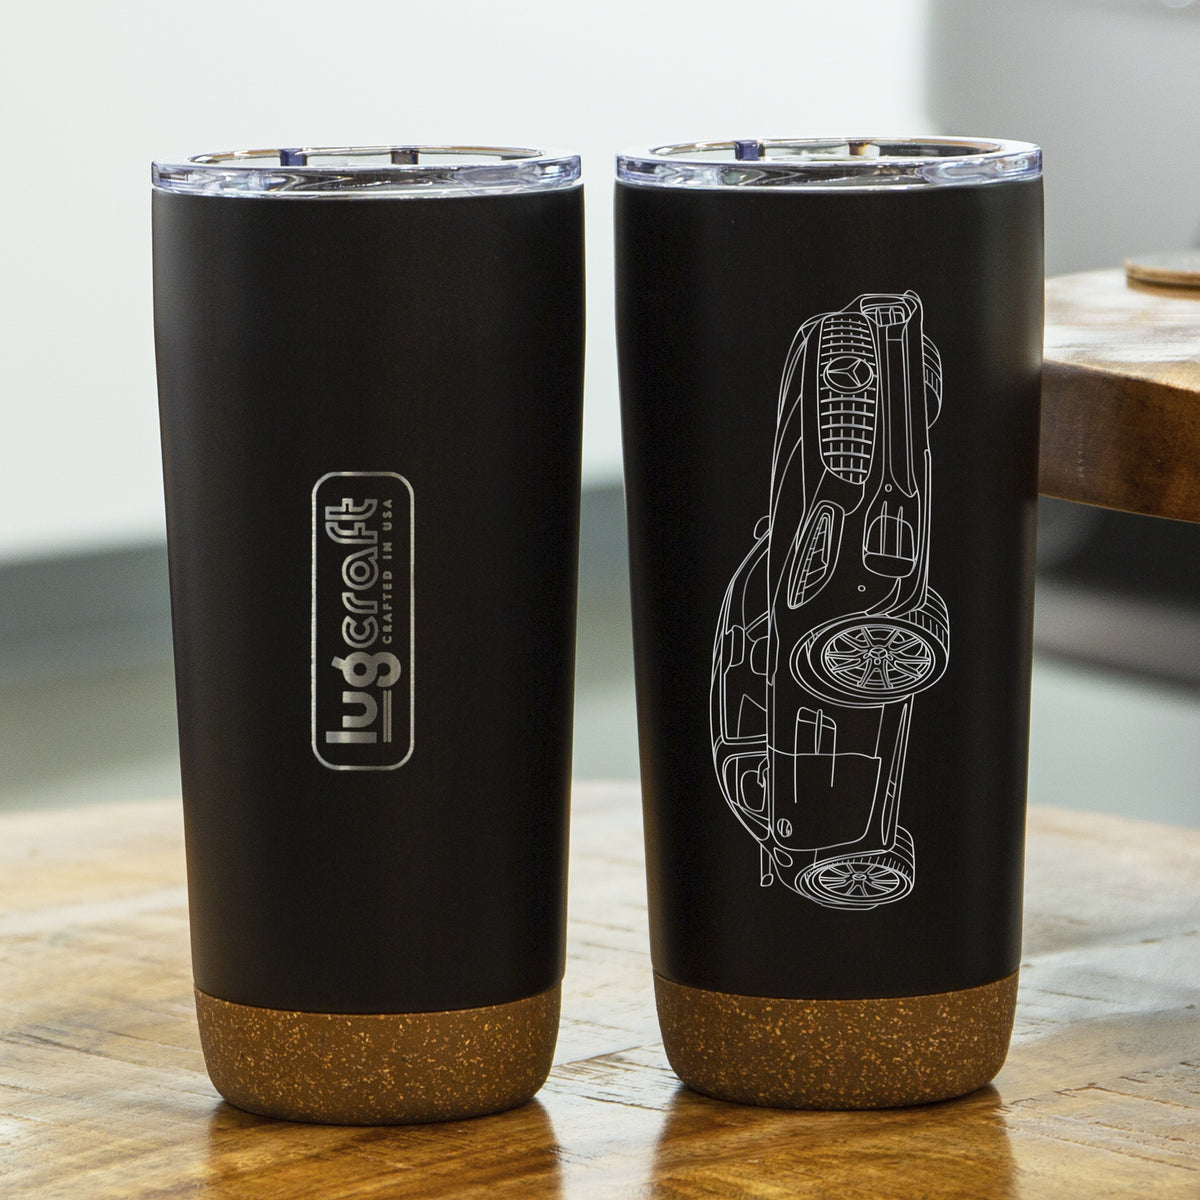 Mercedes Benz AMG GTR Pro Insulated Stainless Steel Coffee Tumbler - 20 oz